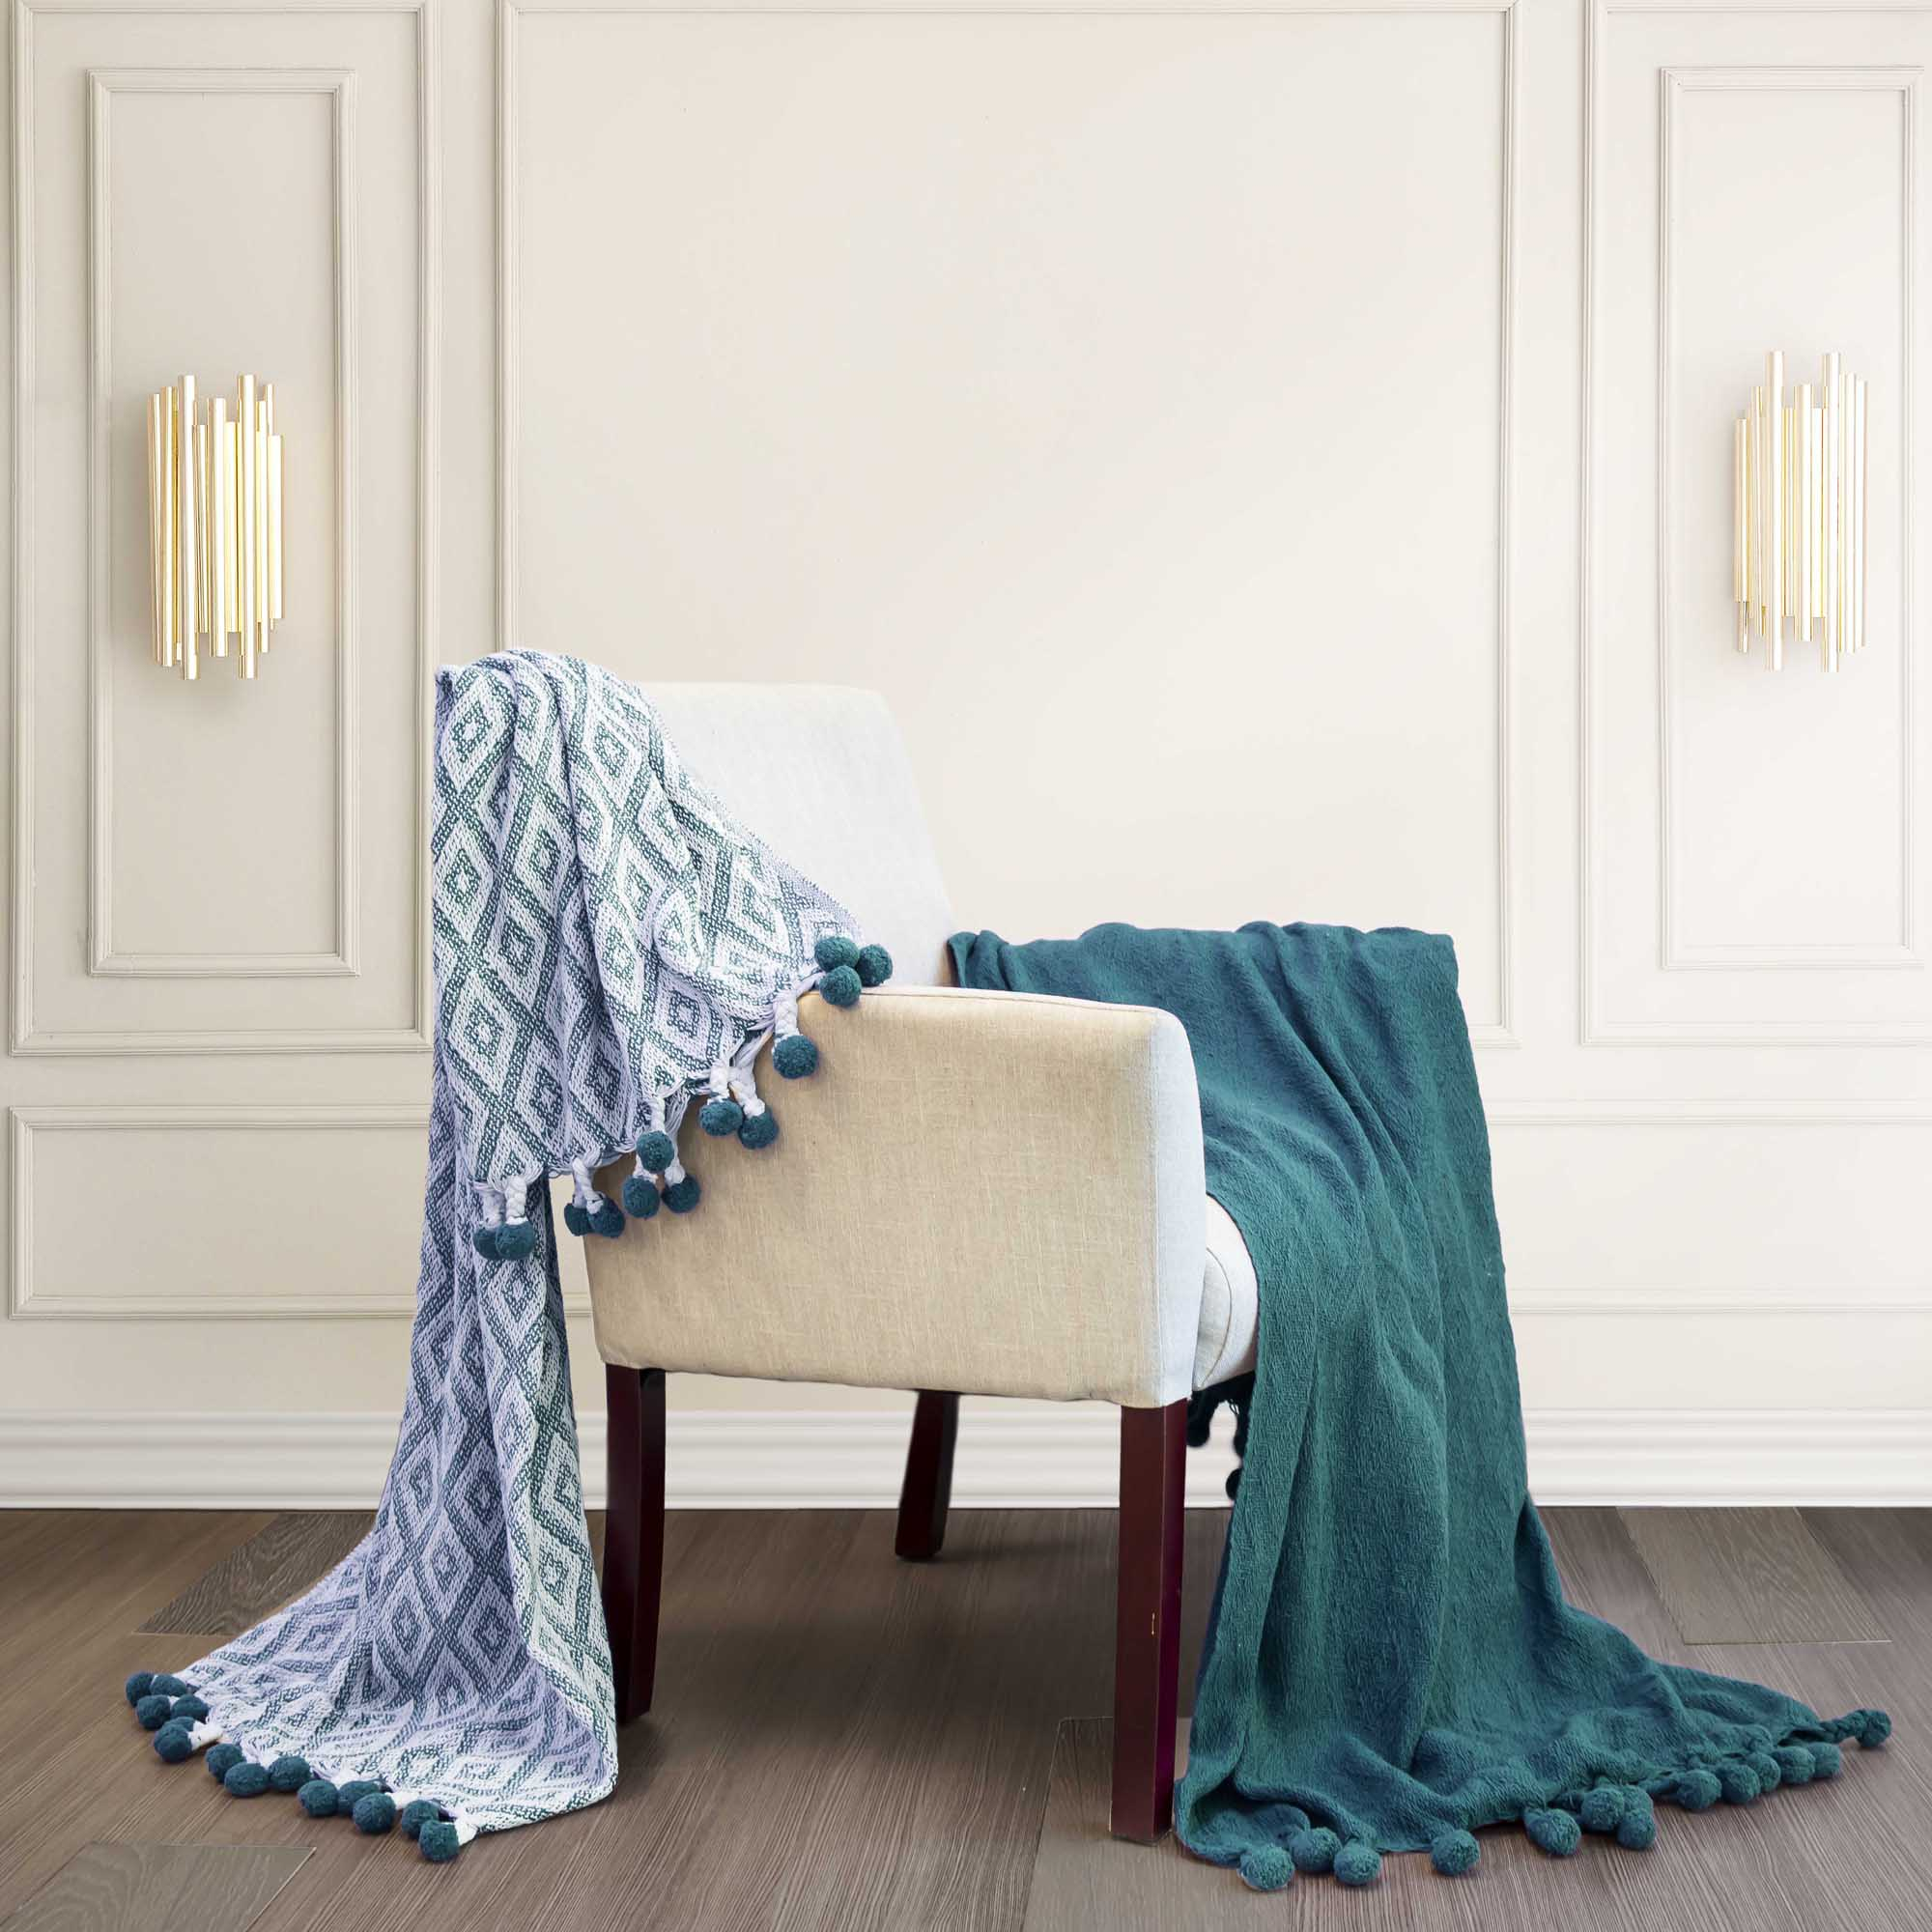 Throw Blankets Amrapur Diamond Maze And Solid 2 Pack Cotton Throw Blankets